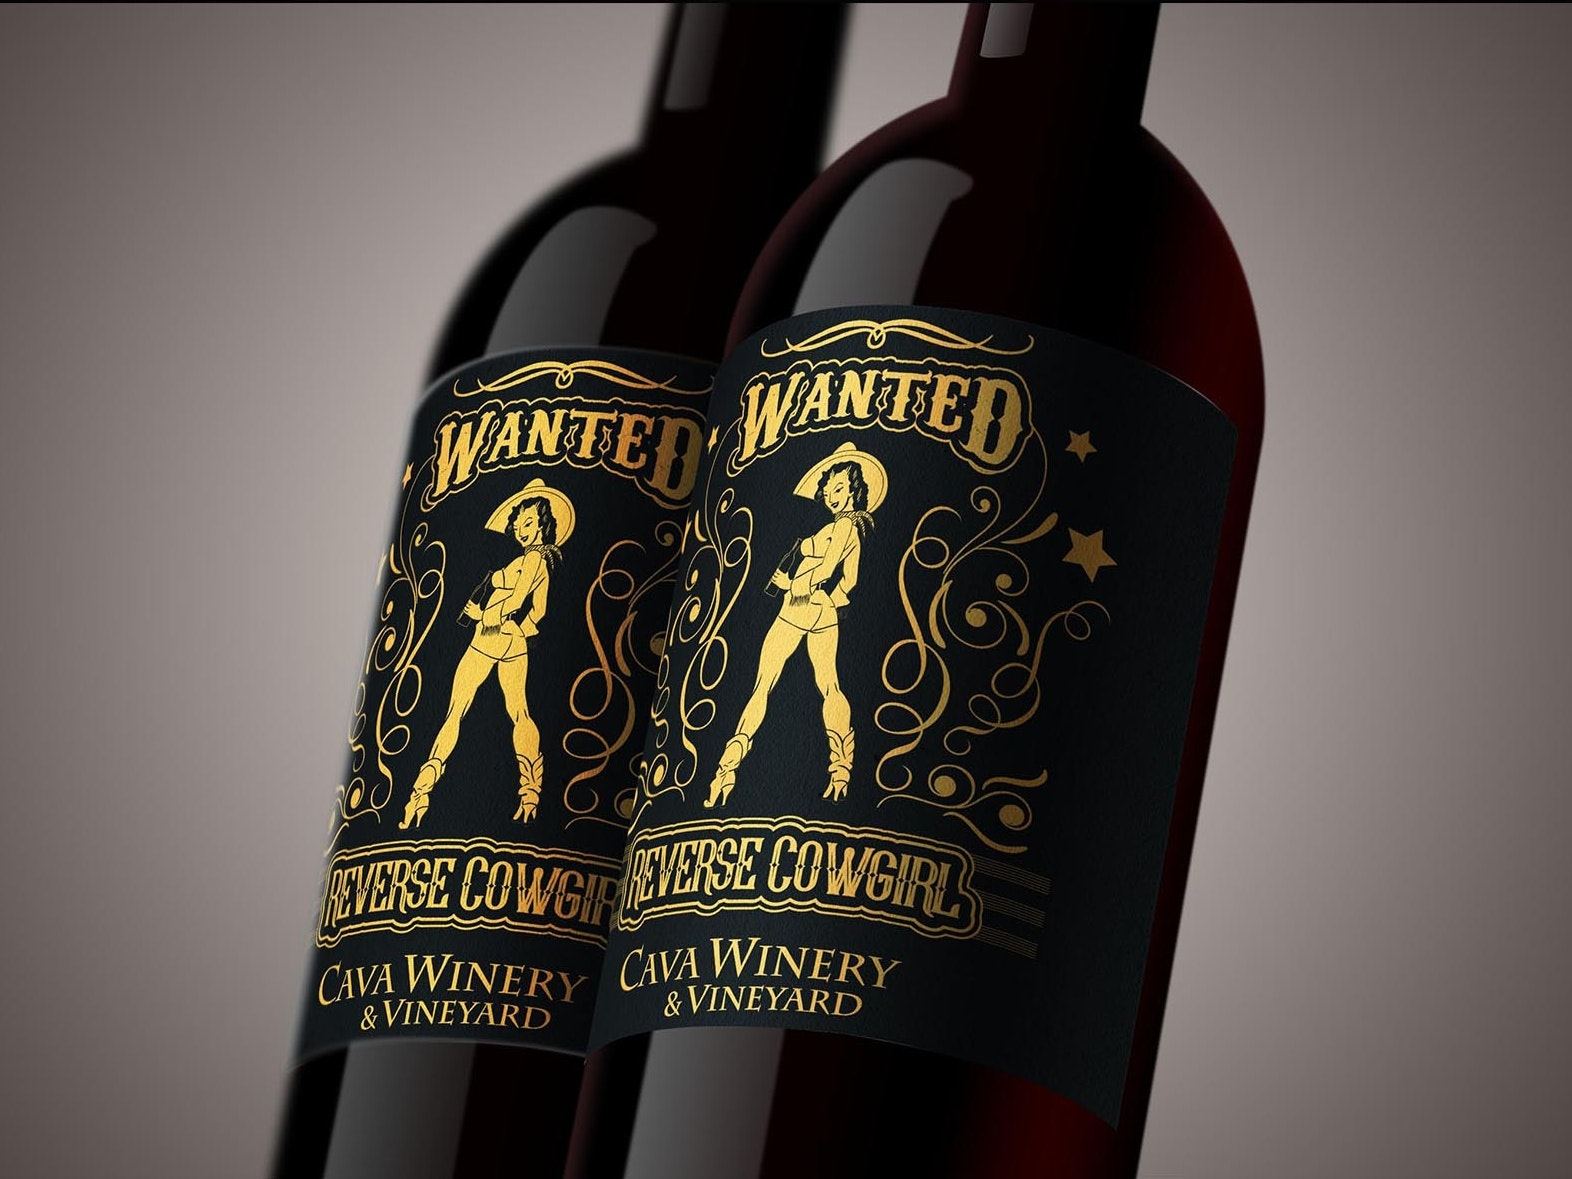 Reverse Cowgirl Wine Label